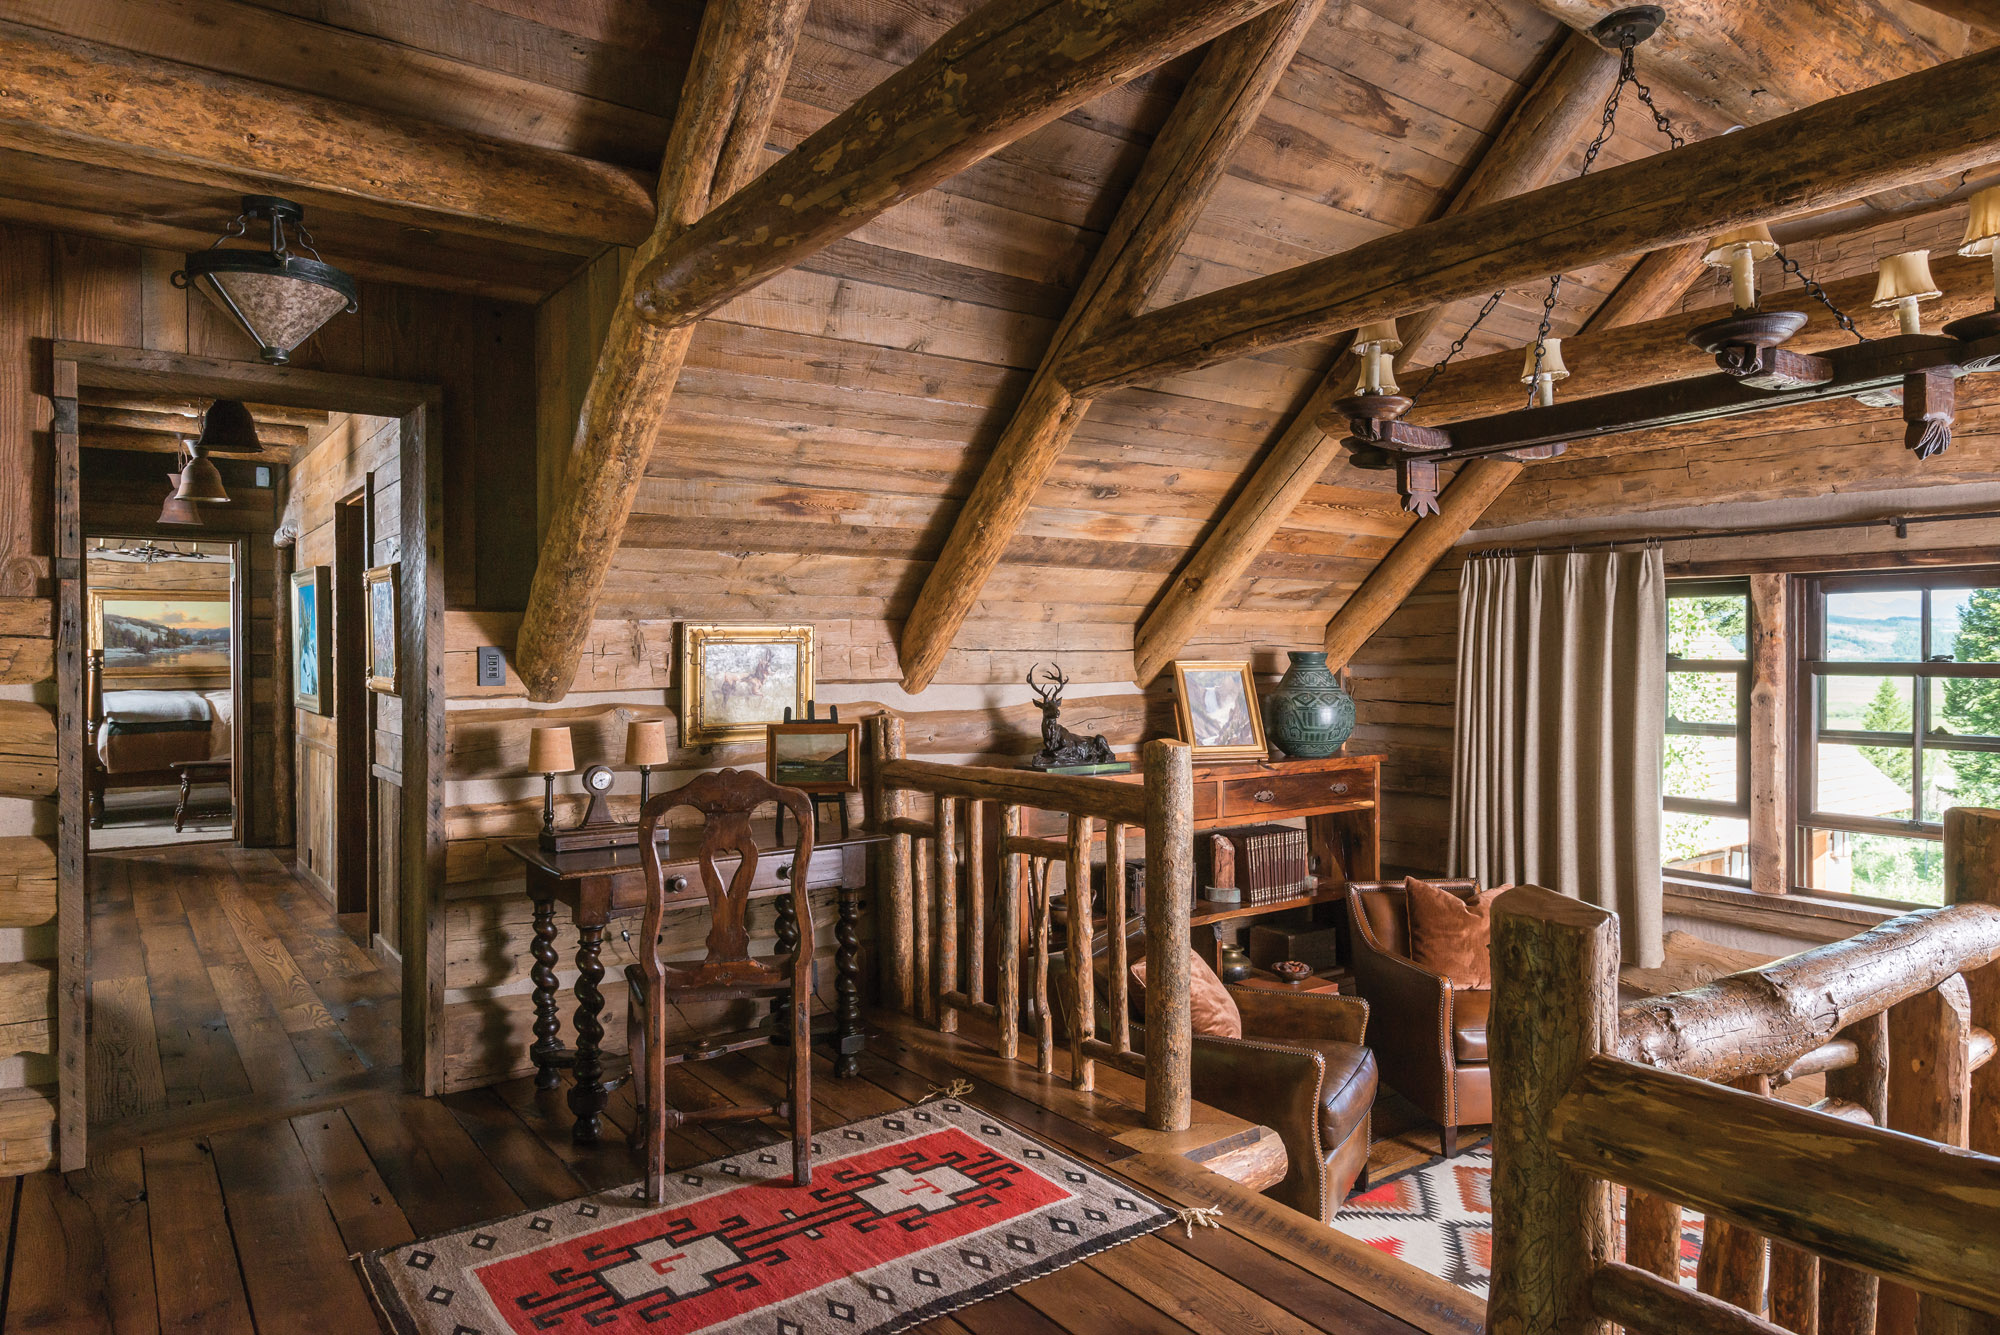 antique furnishings in log cabin